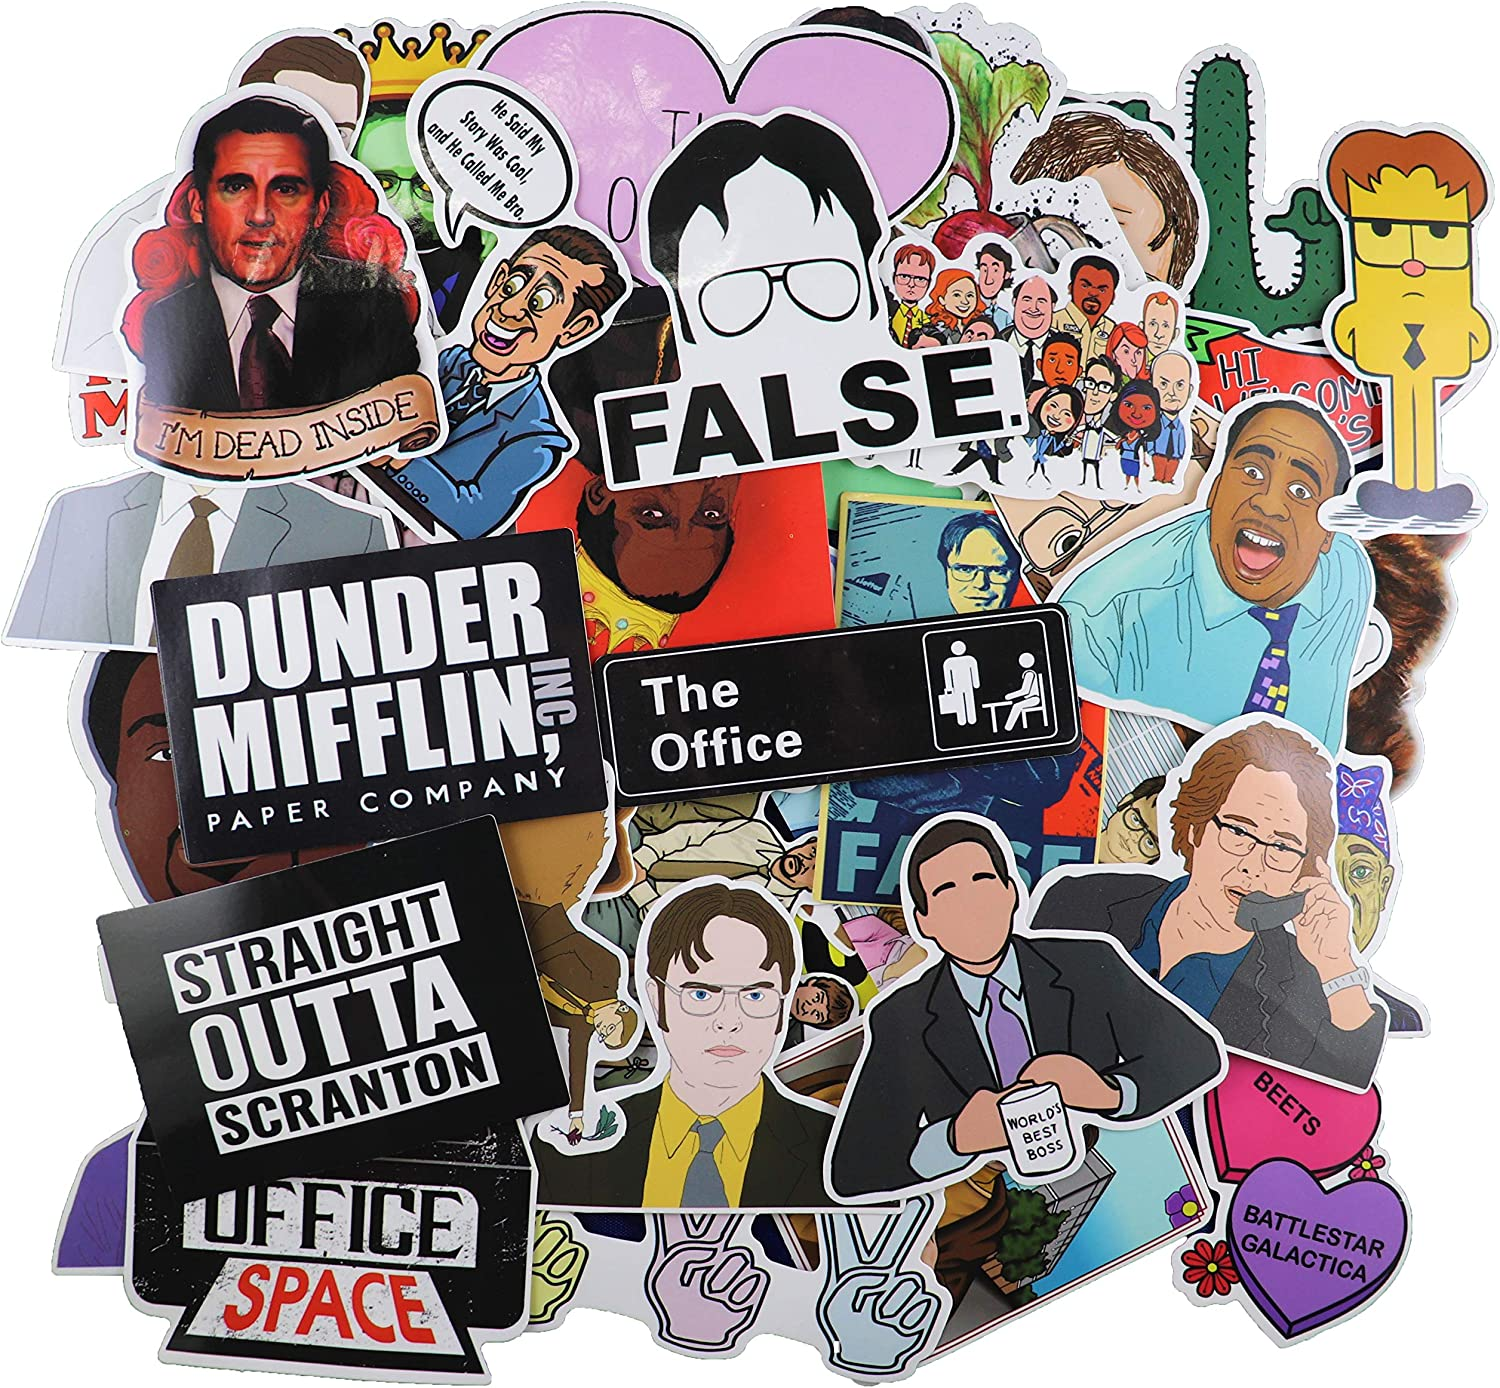 The Office Merchandise Sticker 62pcs Pack - The Office Stickers for Laptops, Dunder Mifflin Stickers, The Office Laptop Stickers, Funny Stickers for Laptops, Computers,Waterproof Vinyl Water Bottle